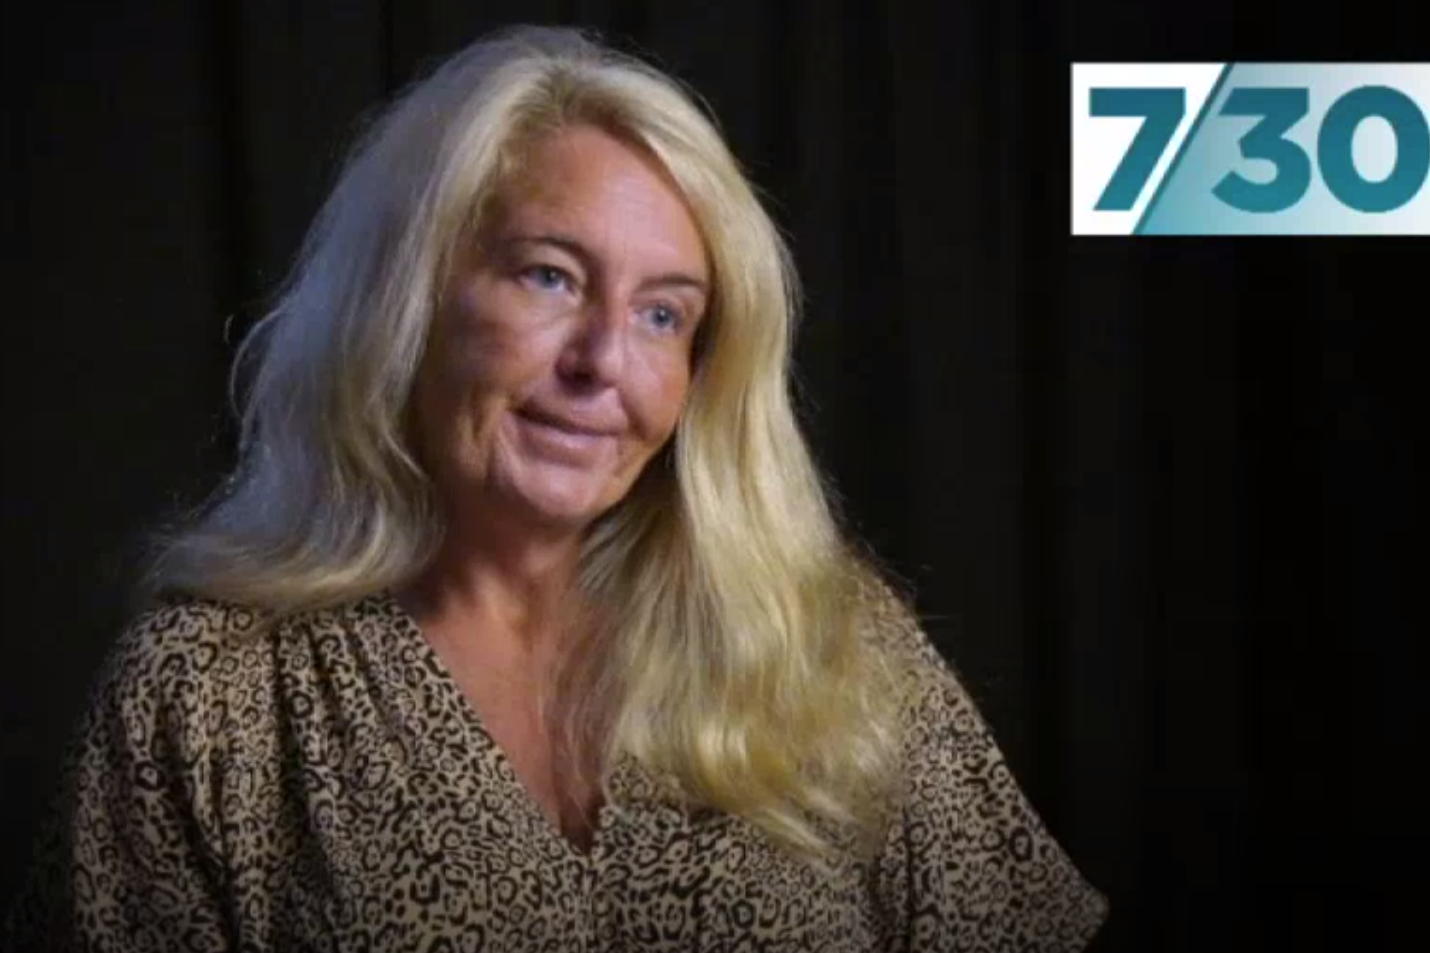 SLY | 10 things we learnt (or didn't learn) from Nicola Gobbo's bombshell interview